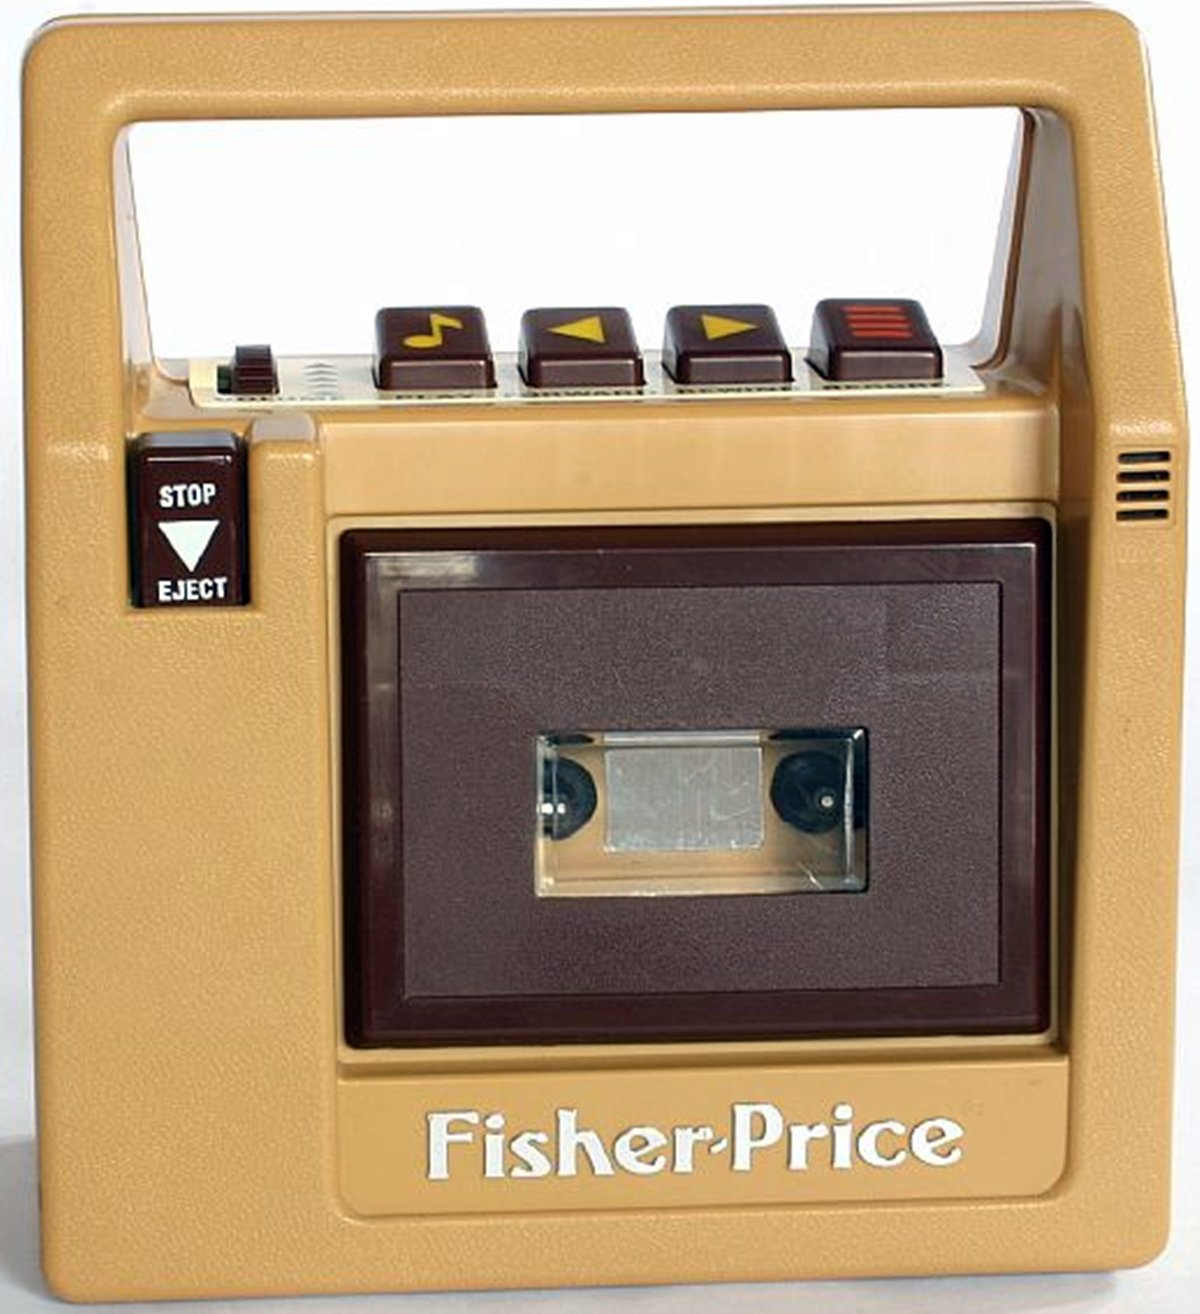 13 13 15 Musical Toys From Your Childhood We Bet You've Forgotten About